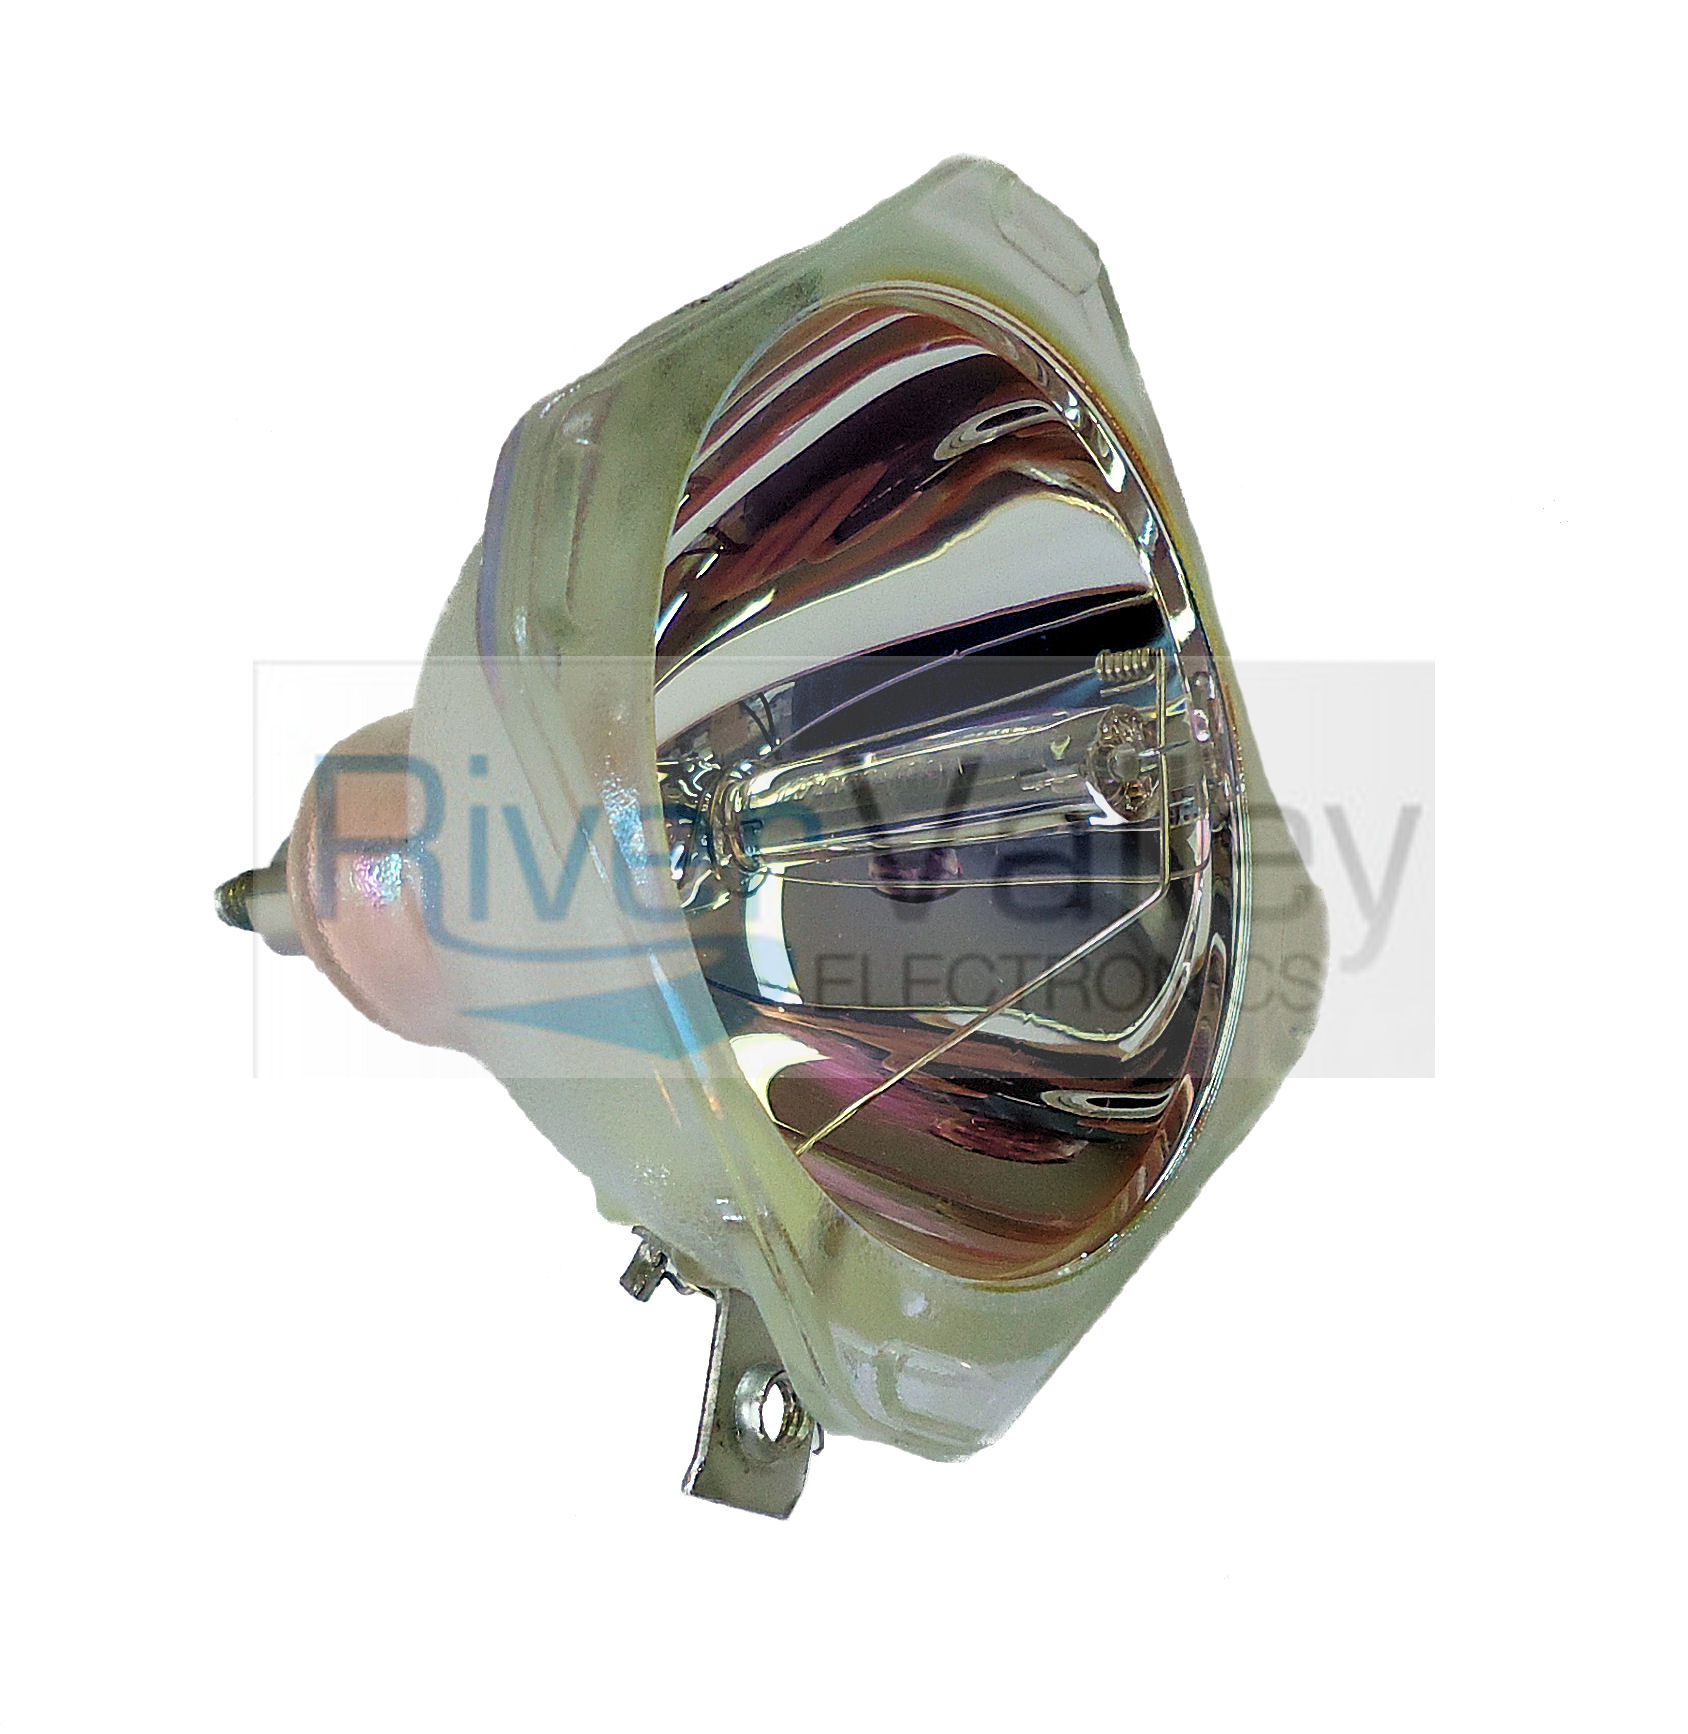 Tv Lamp Bulb For Sony Kdf 50e2000 Kdf 50e2010 Kfe 42a10